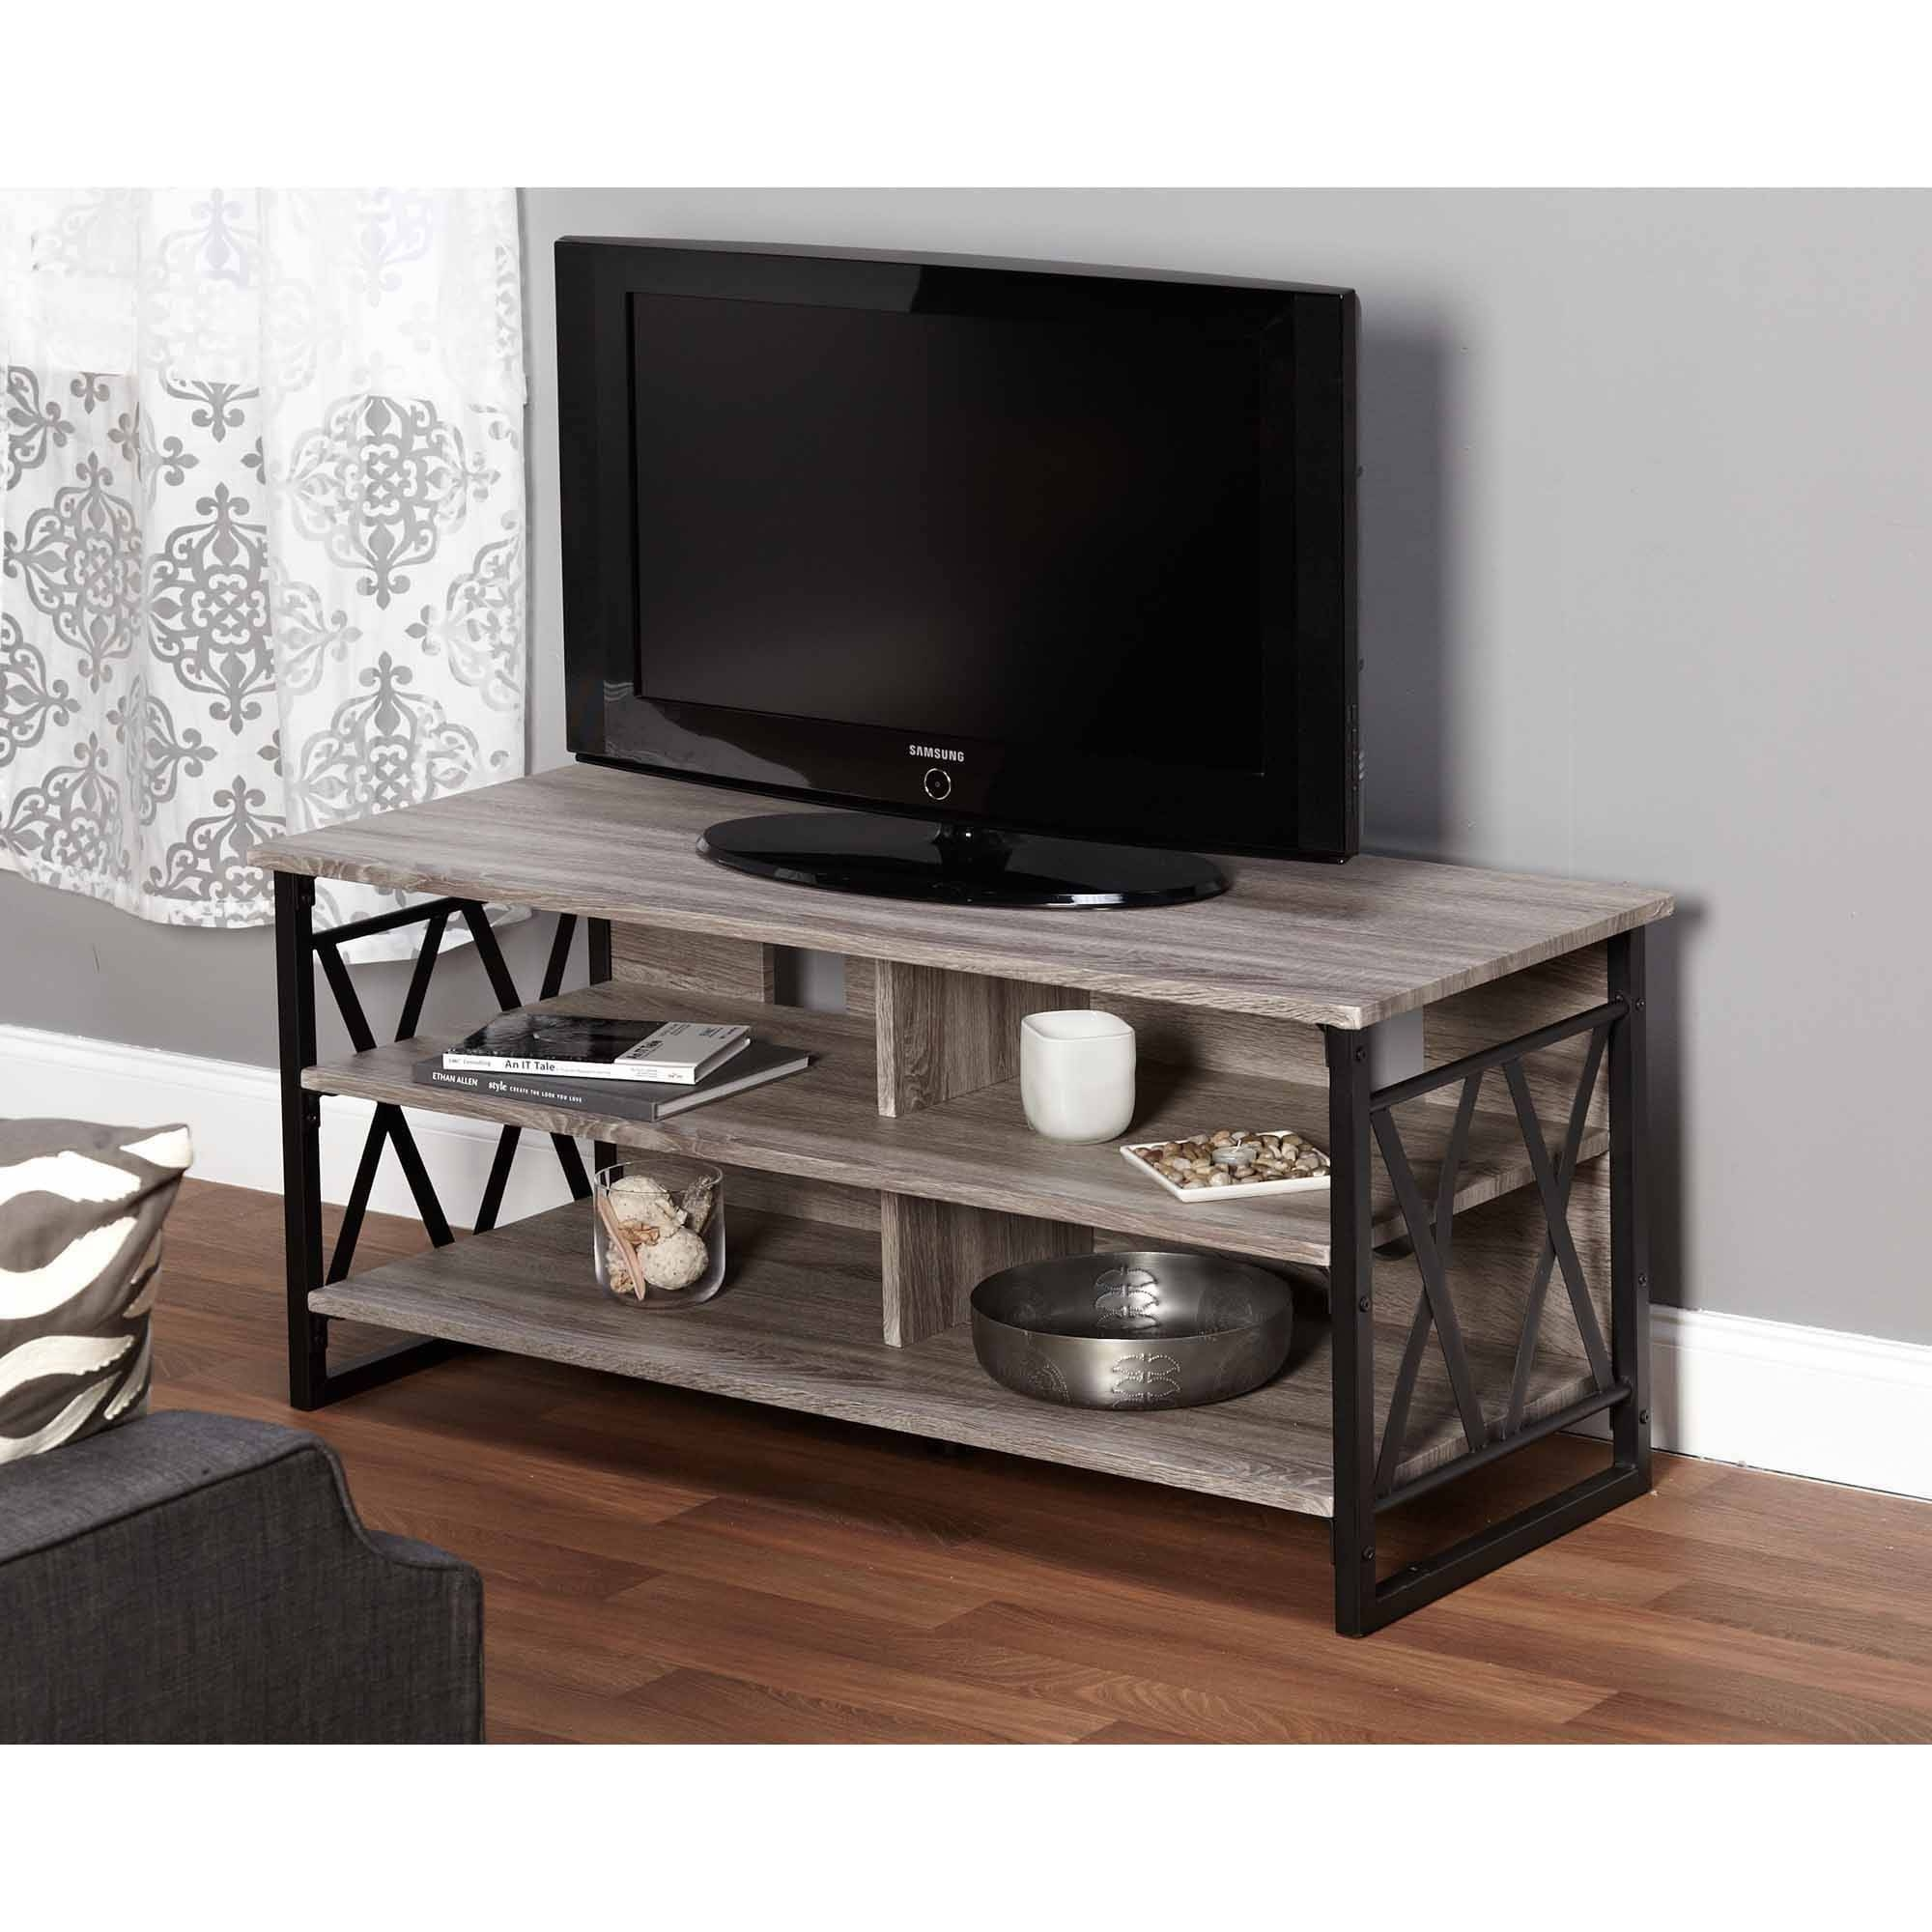 Charming Light Wood Tv Stand 75 For Your Home Decorating Ideas intended for Grey Wood Tv Stands (Image 1 of 15)